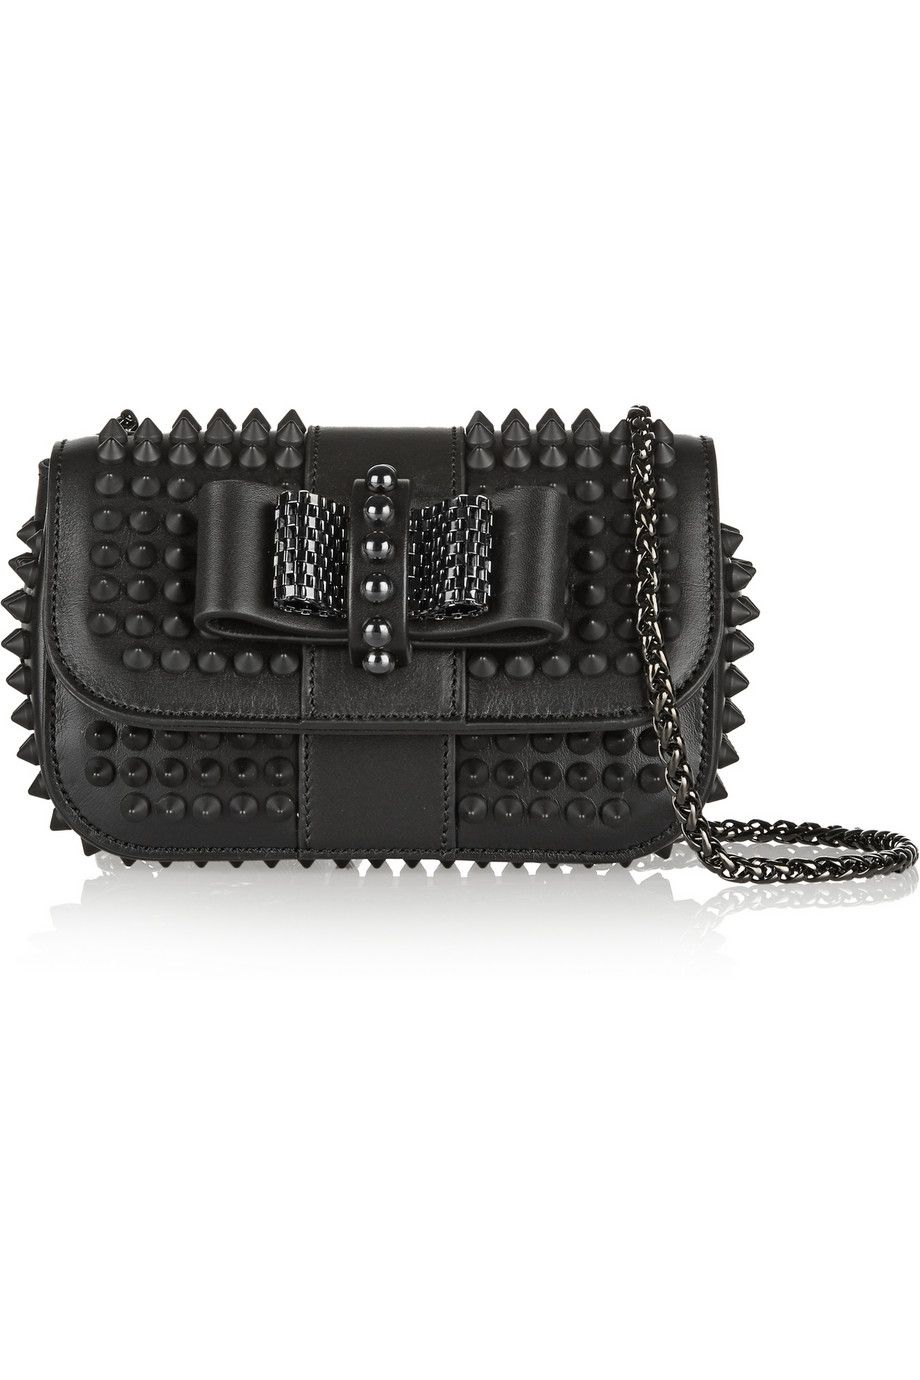 c2beac4c482 CHRISTIAN LOUBOUTIN Sweet Charity studded leather shoulder bag £895 ...